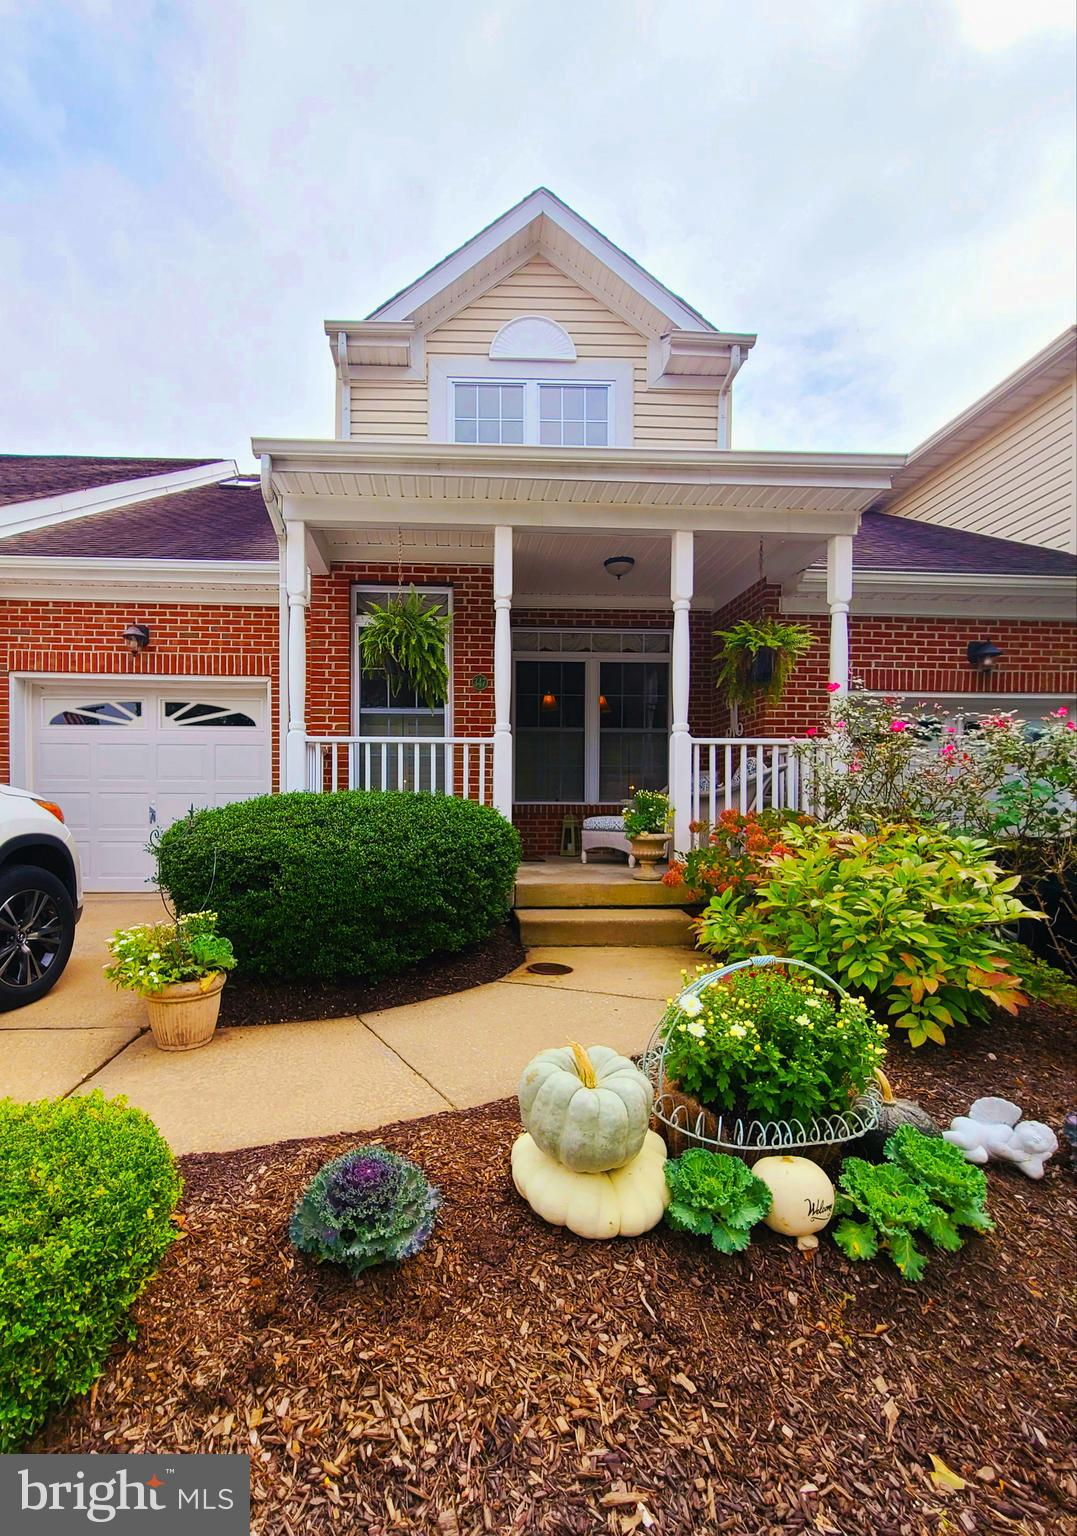 Welcome home! This immaculate house offers two large bedrooms, two and a half baths plus a loft area